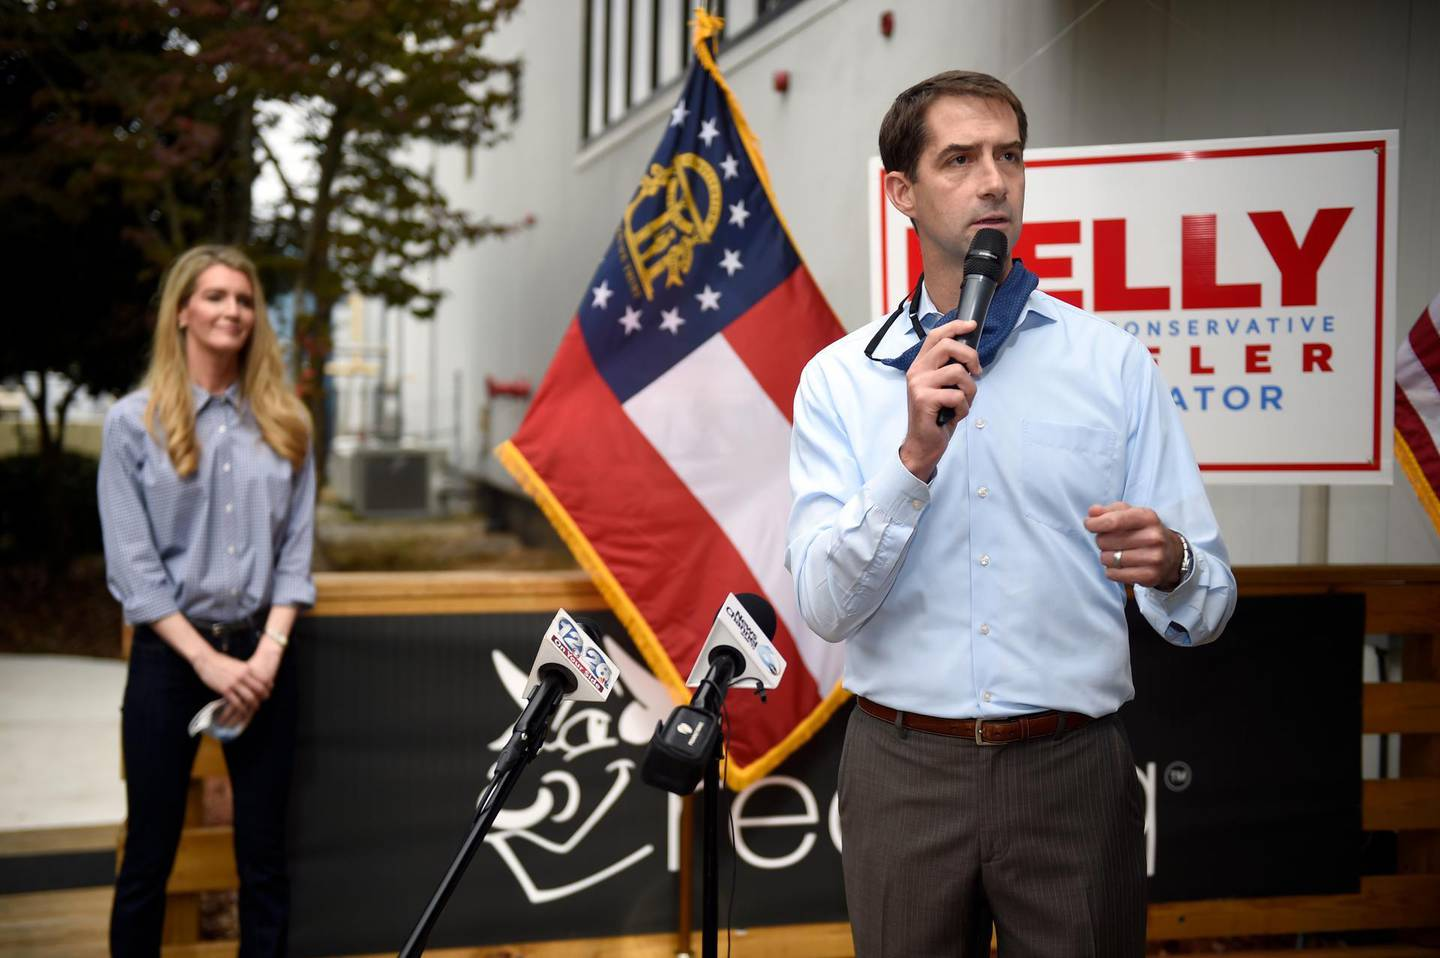 Sen. Tom Cotton, R-Ark., right, speaks during a campaign event for Sen. Kelly Loeffler, R-Ga., left, at the Recteq facility in Evans, Ga., Monday, Oct. 12, 2020. (Michael Holahan/The Augusta Chronicle via AP)